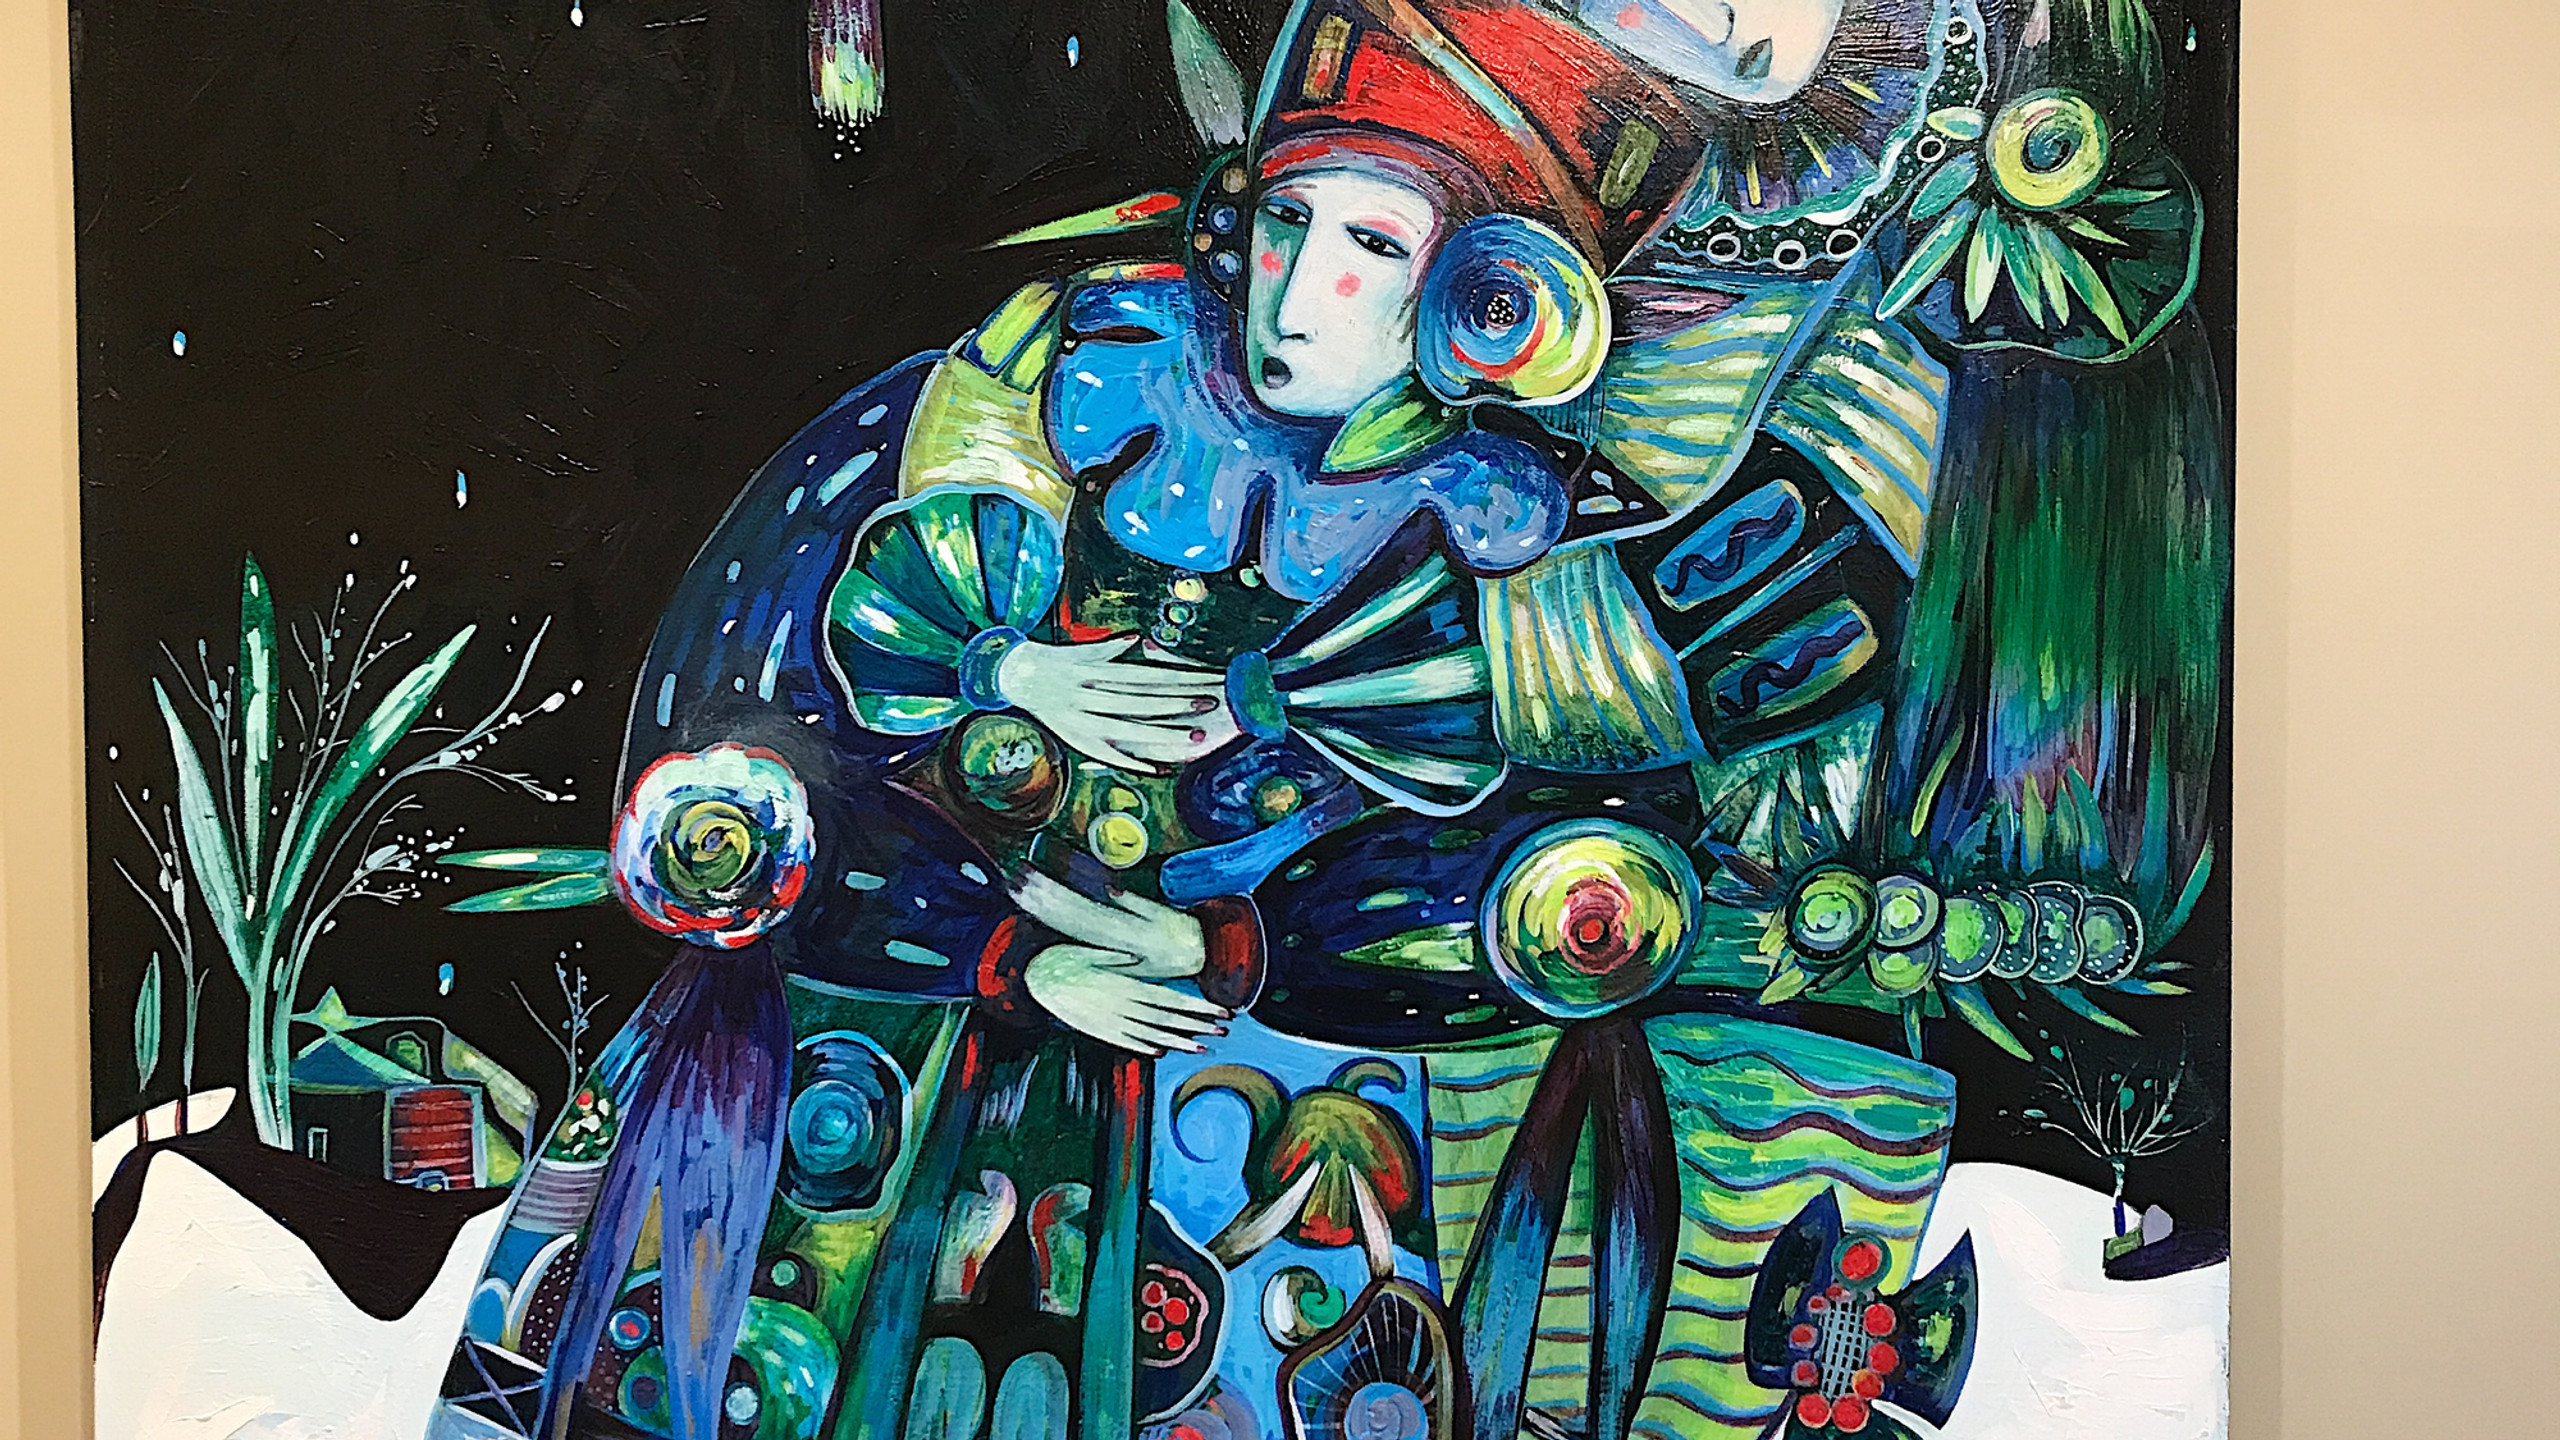 In this large 60x72 painting, Toller created a story between the two people. He used his typical green and blue shades which changed the  mood of the painting.